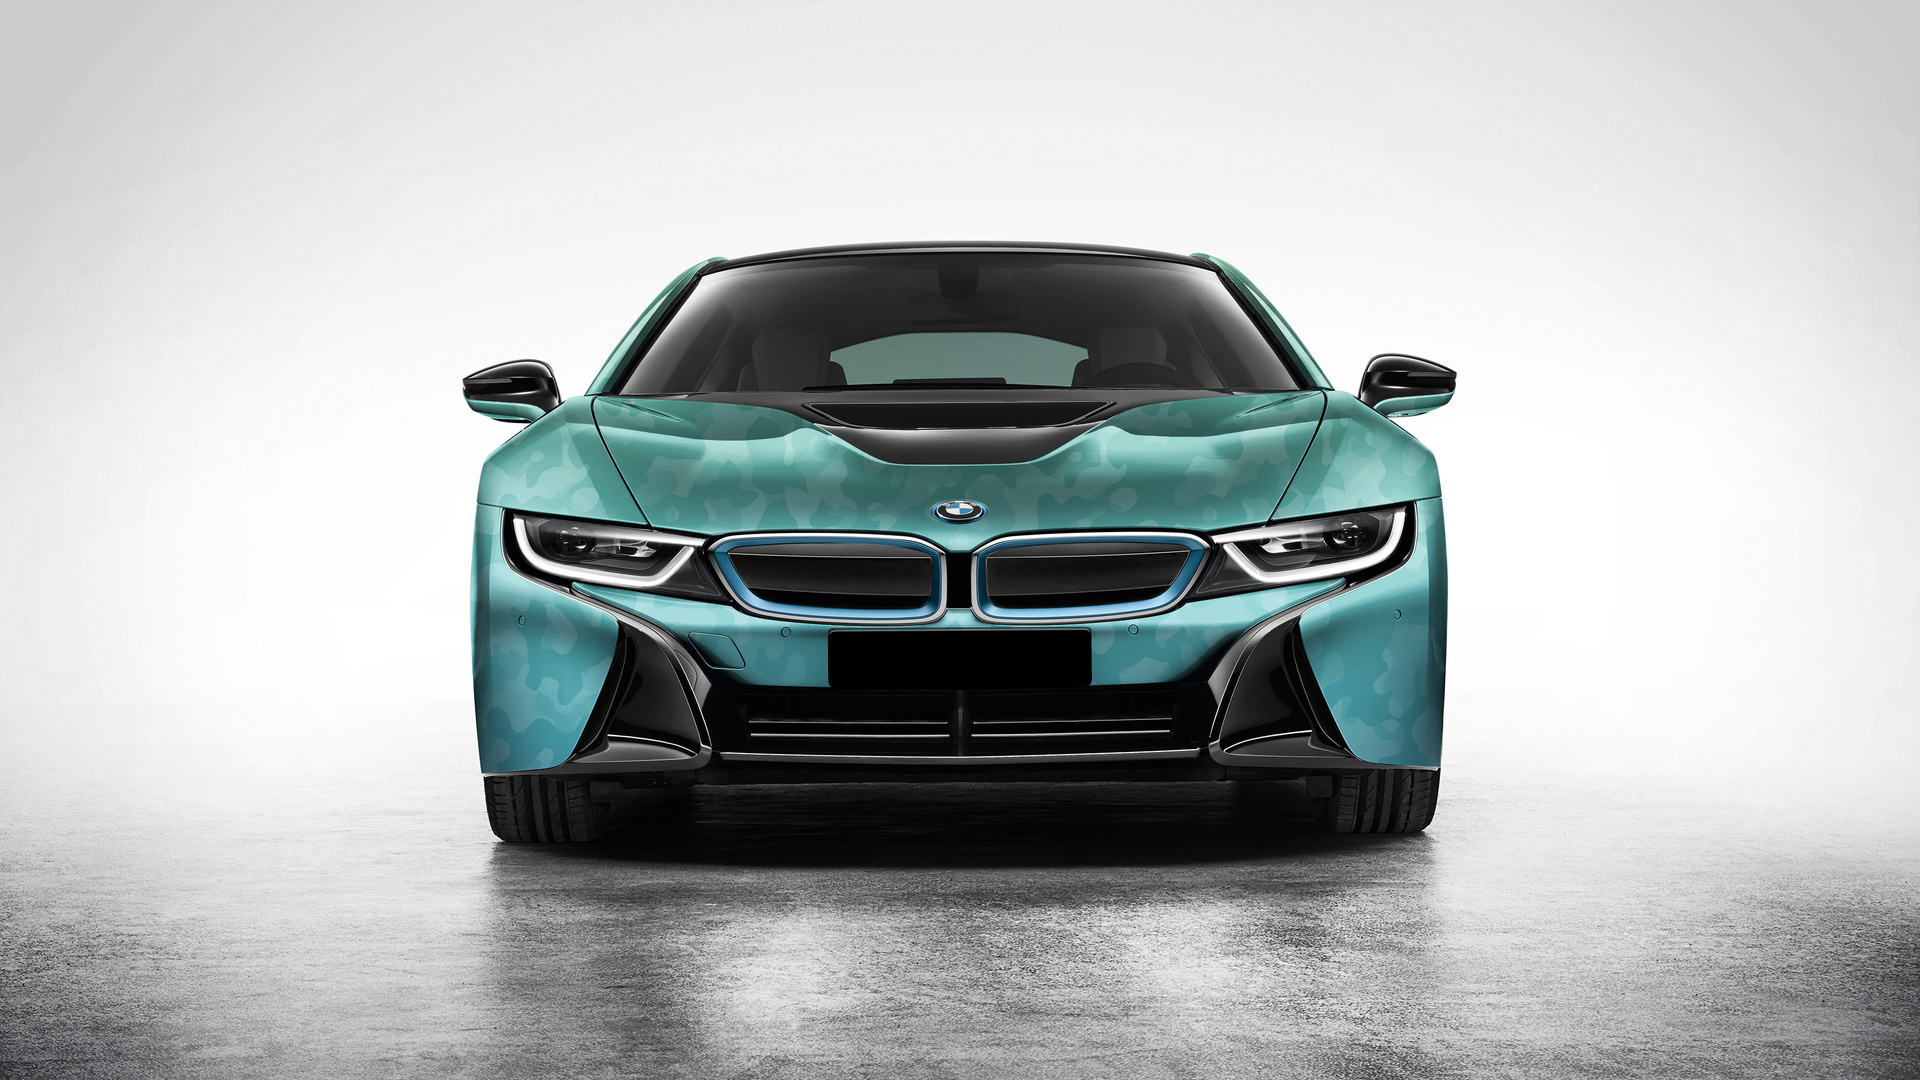 bmw resourced based view Specifications bmw dealers payments compare as spectacular as a lamborghini, but as green as a nissan leaf, the bmw i8, a plug-in hybrid backed by a 15-litre gas engine, is capable of top-notch performance the big news this year is the addition of a protonic red version.